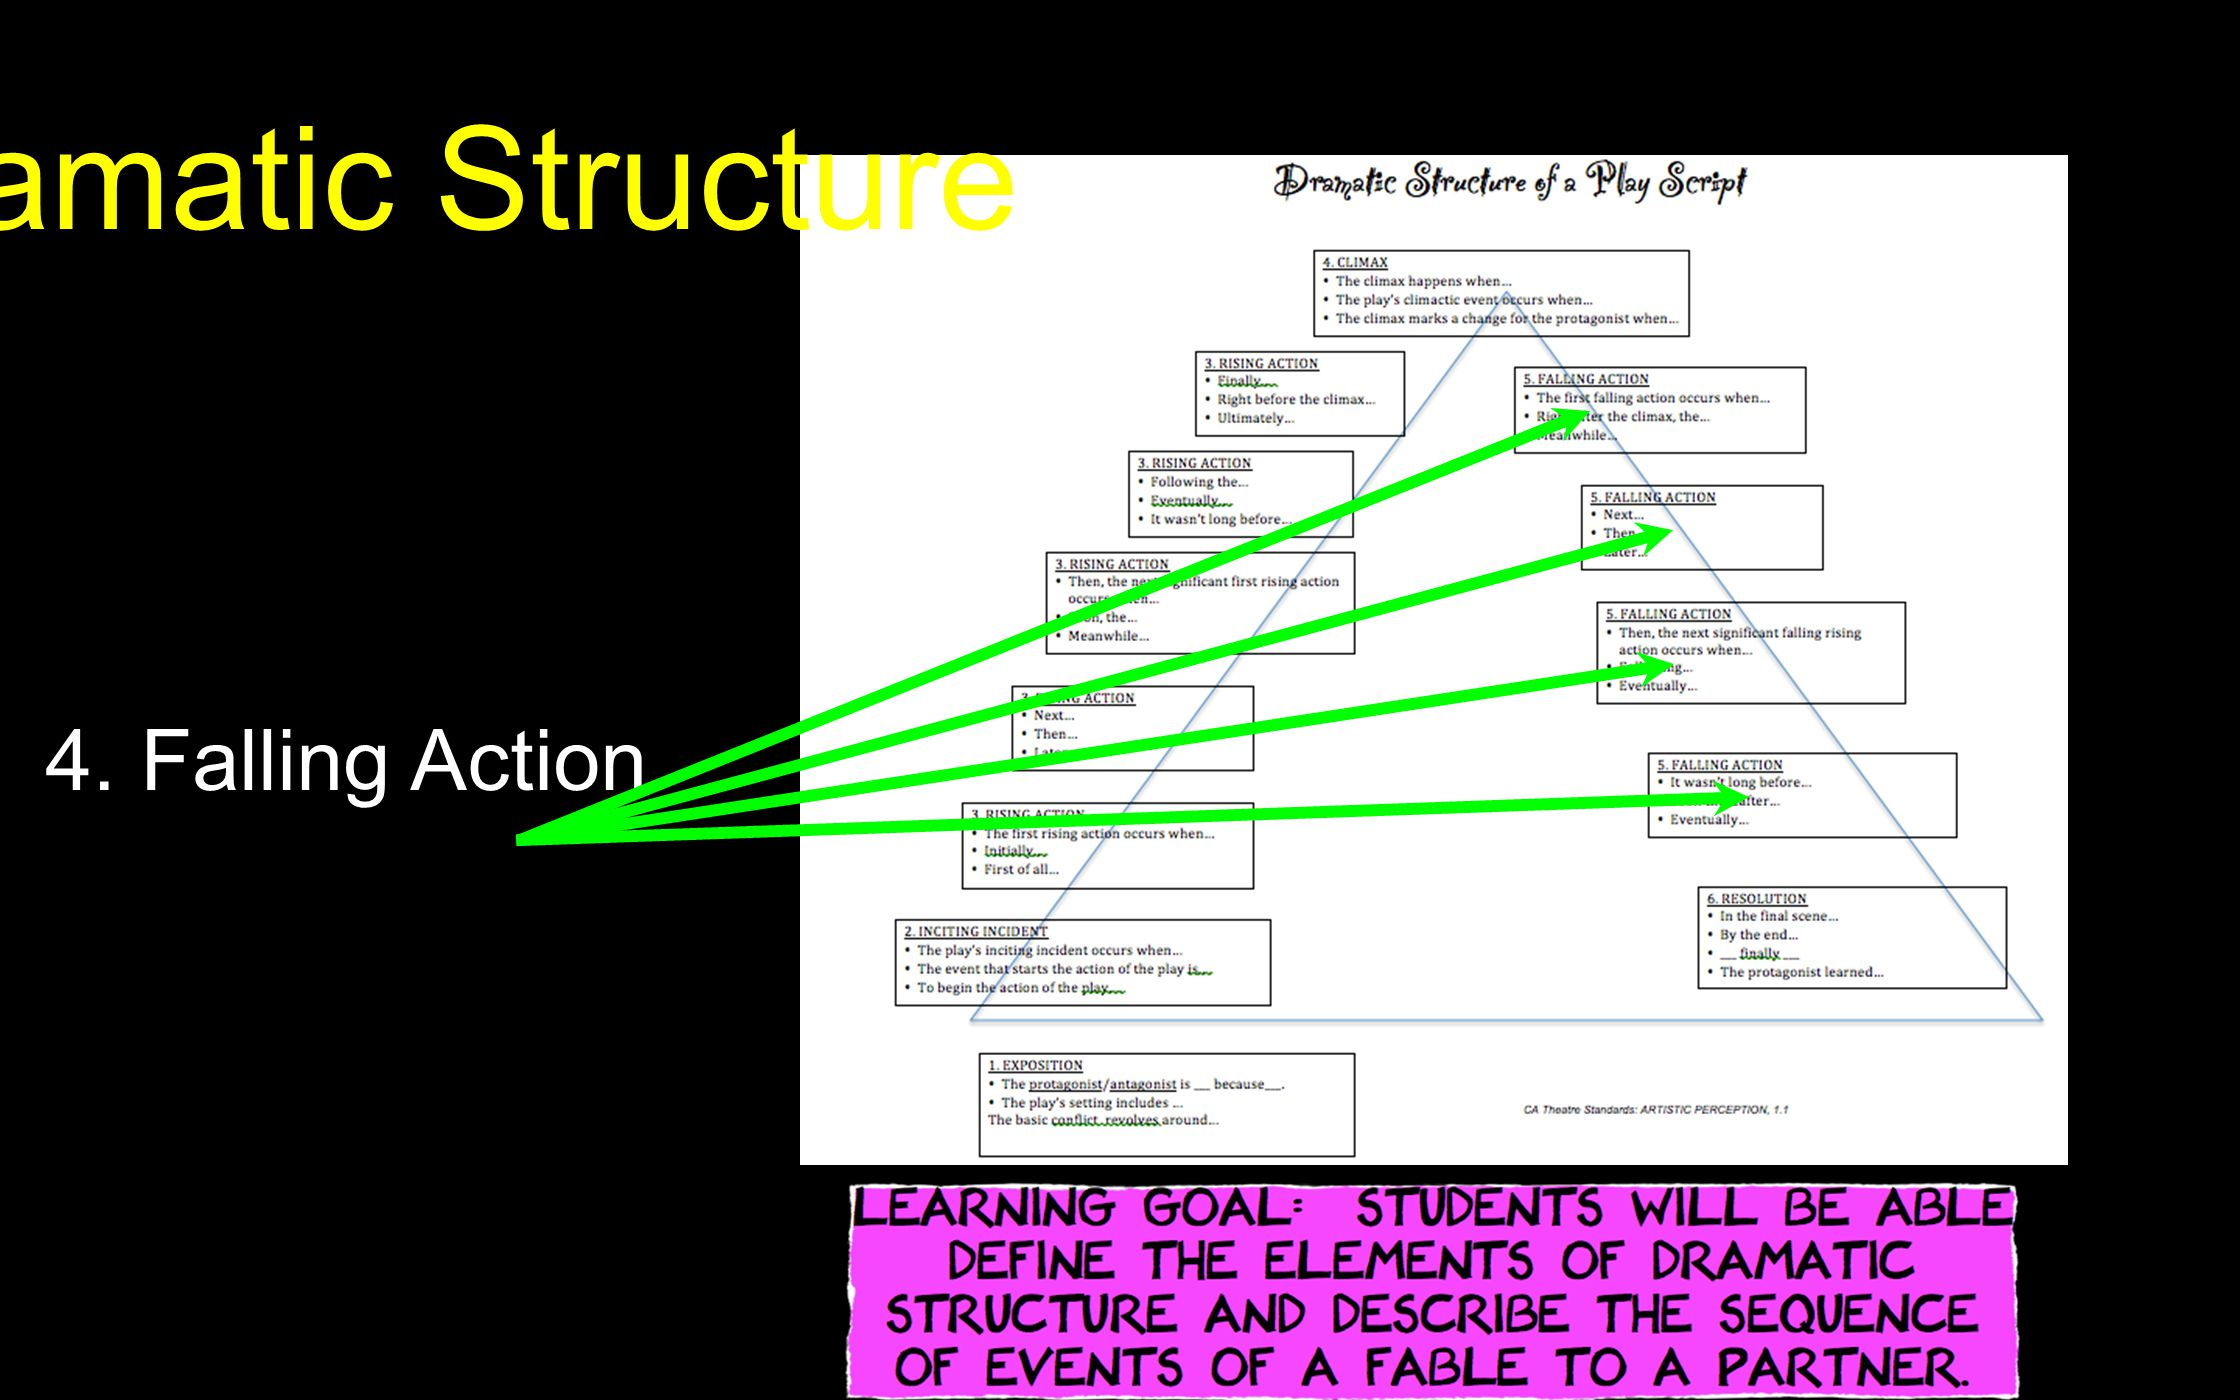 Dramatic Structure Page Ppt Video Online Download Short Story Plot Diagram 24 4 Falling Action